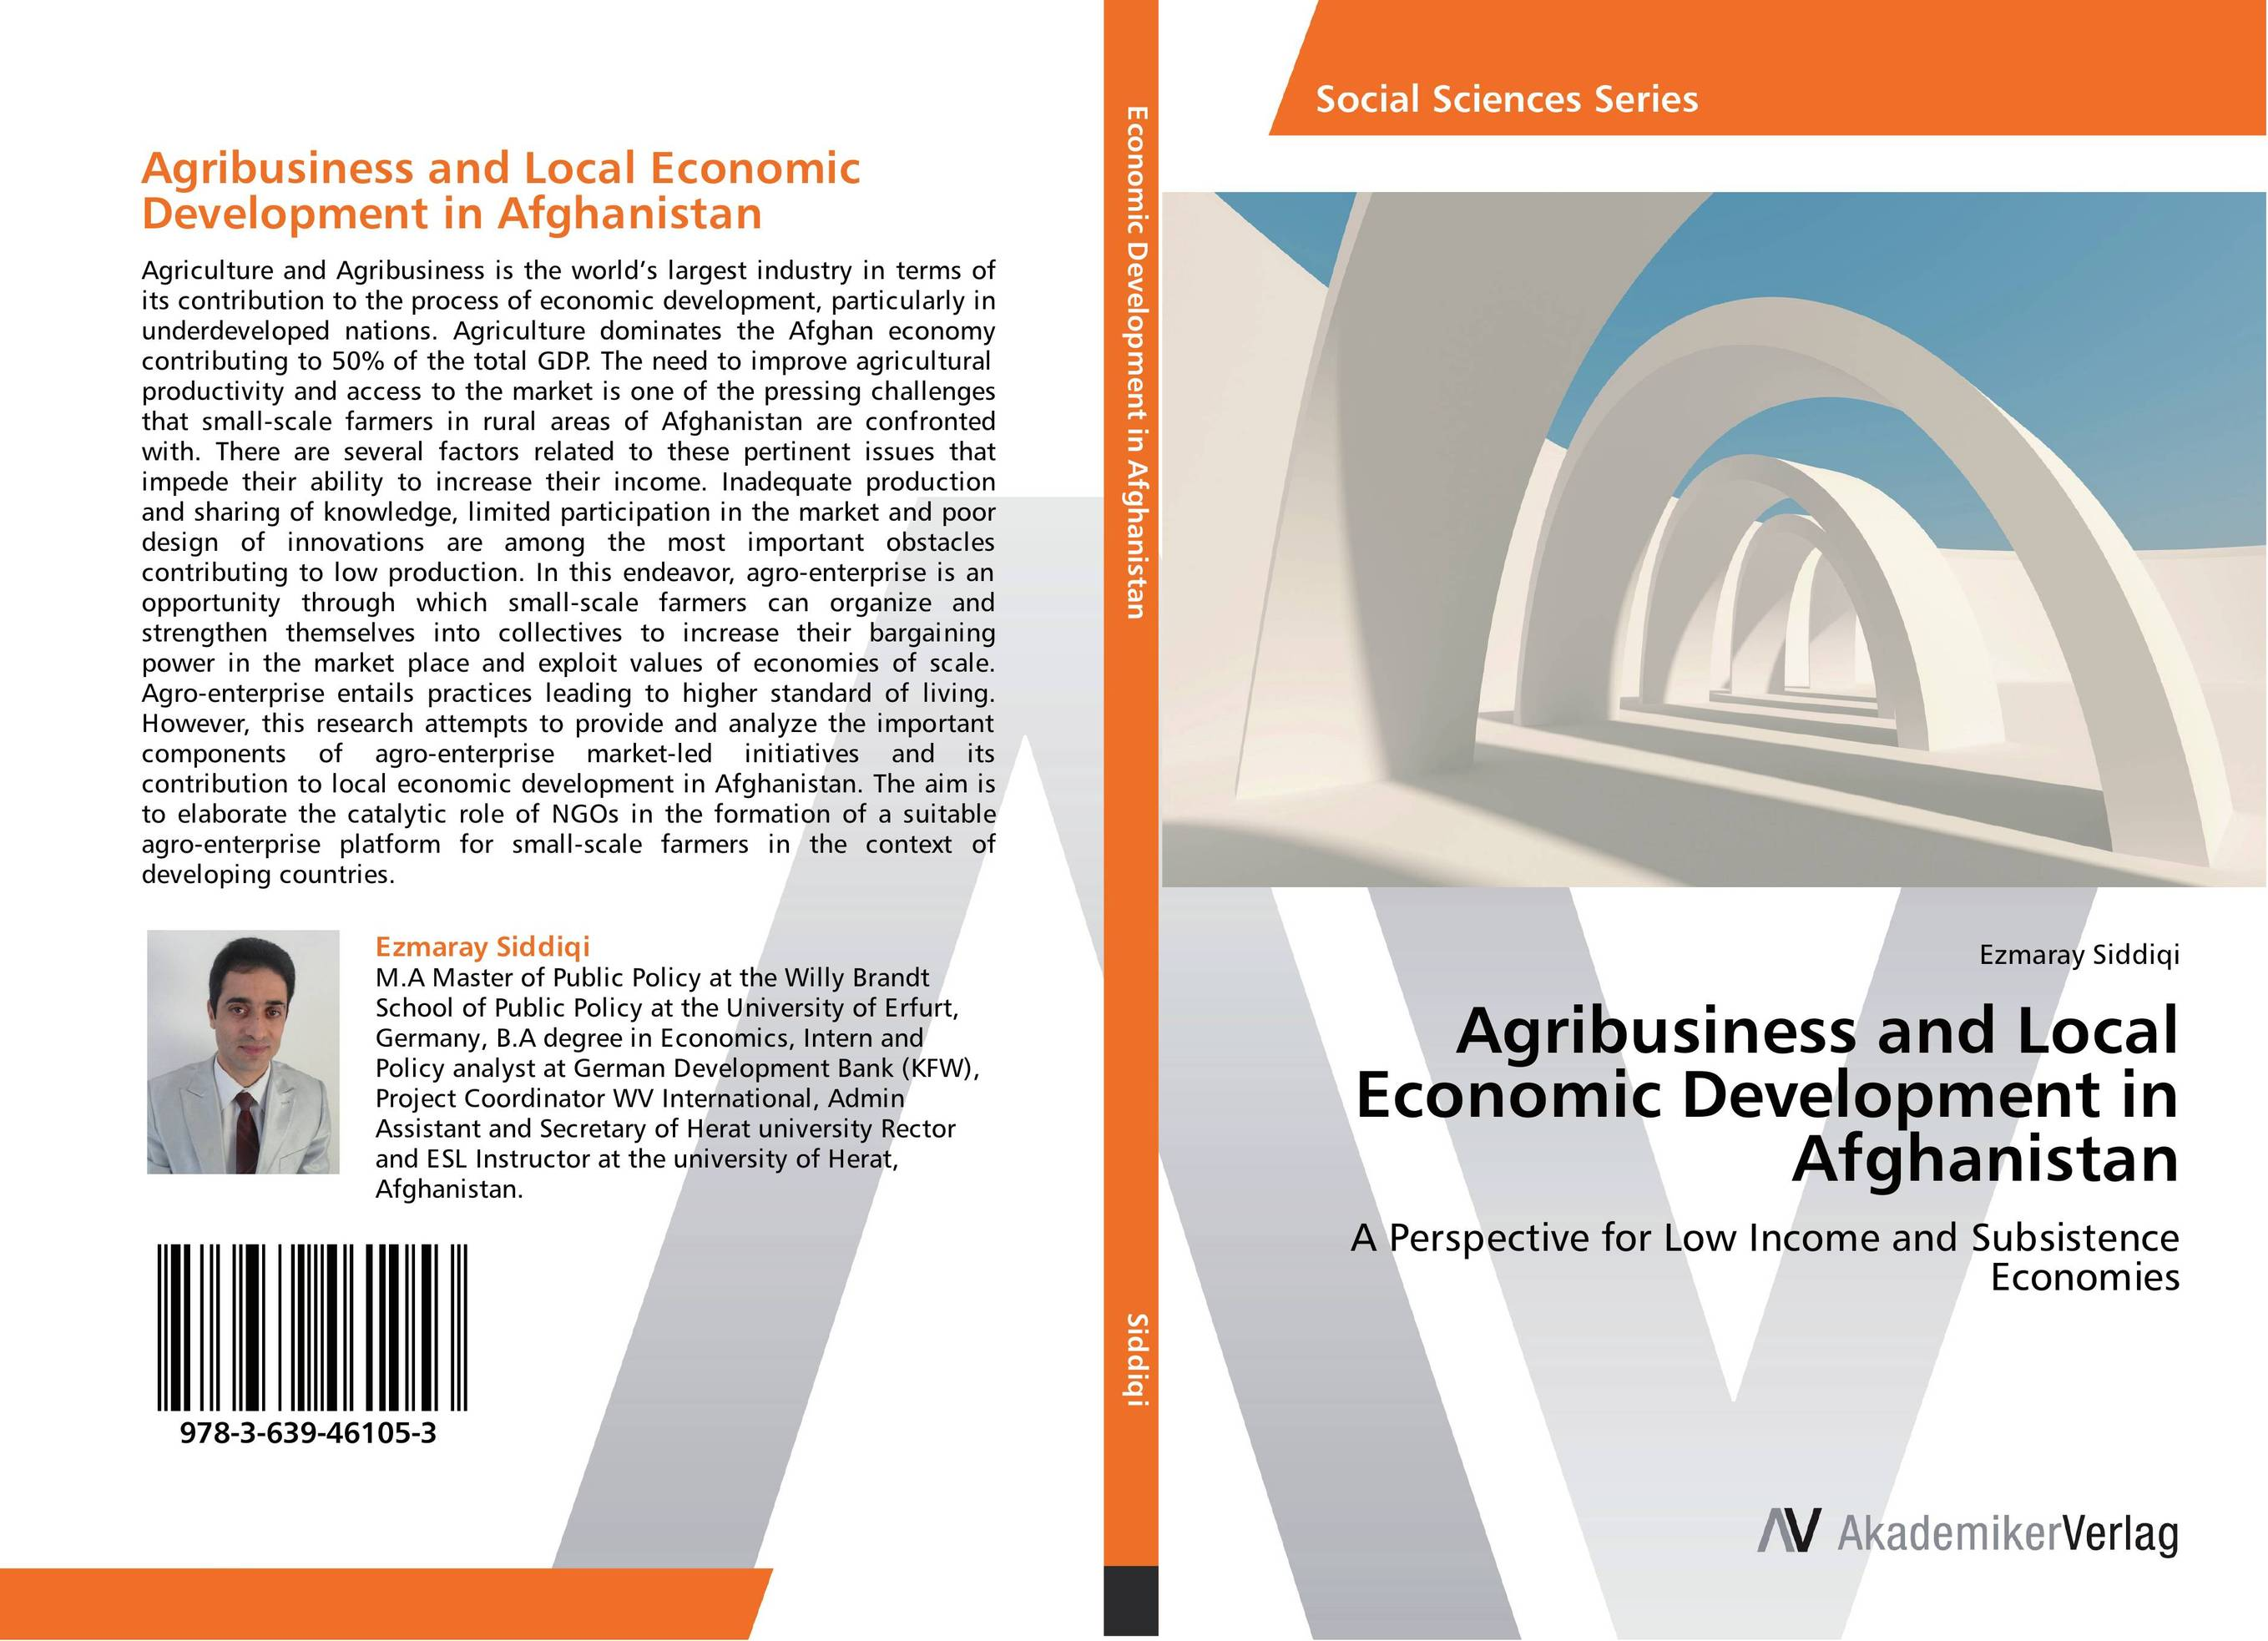 Agribusiness and Local Economic Development in Afghanistan